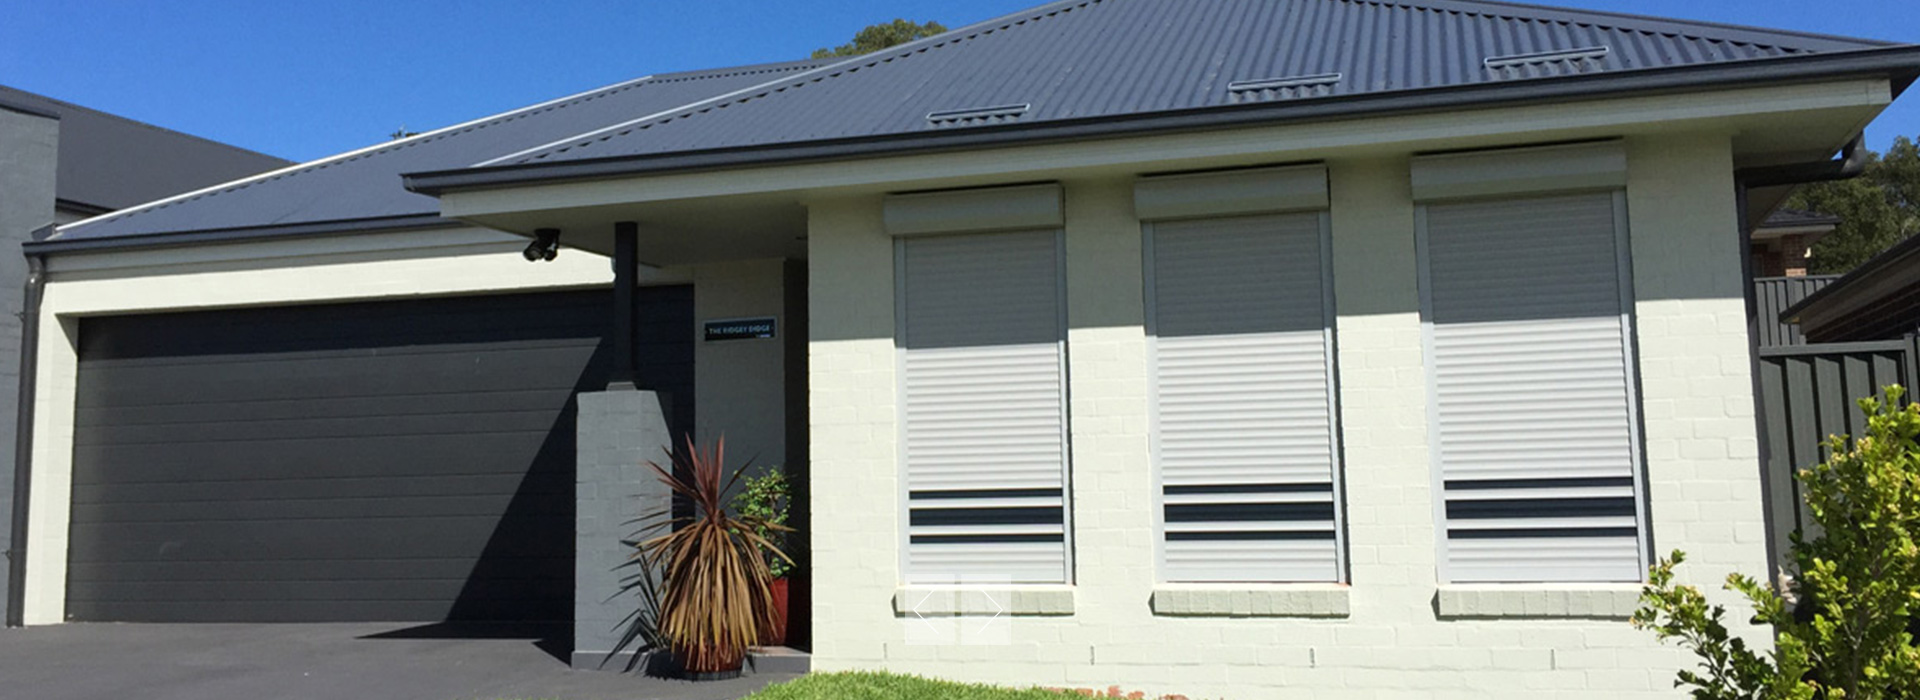 All District Roller Shutters provde Bushfire Rated Roller Shutters Sydney Services